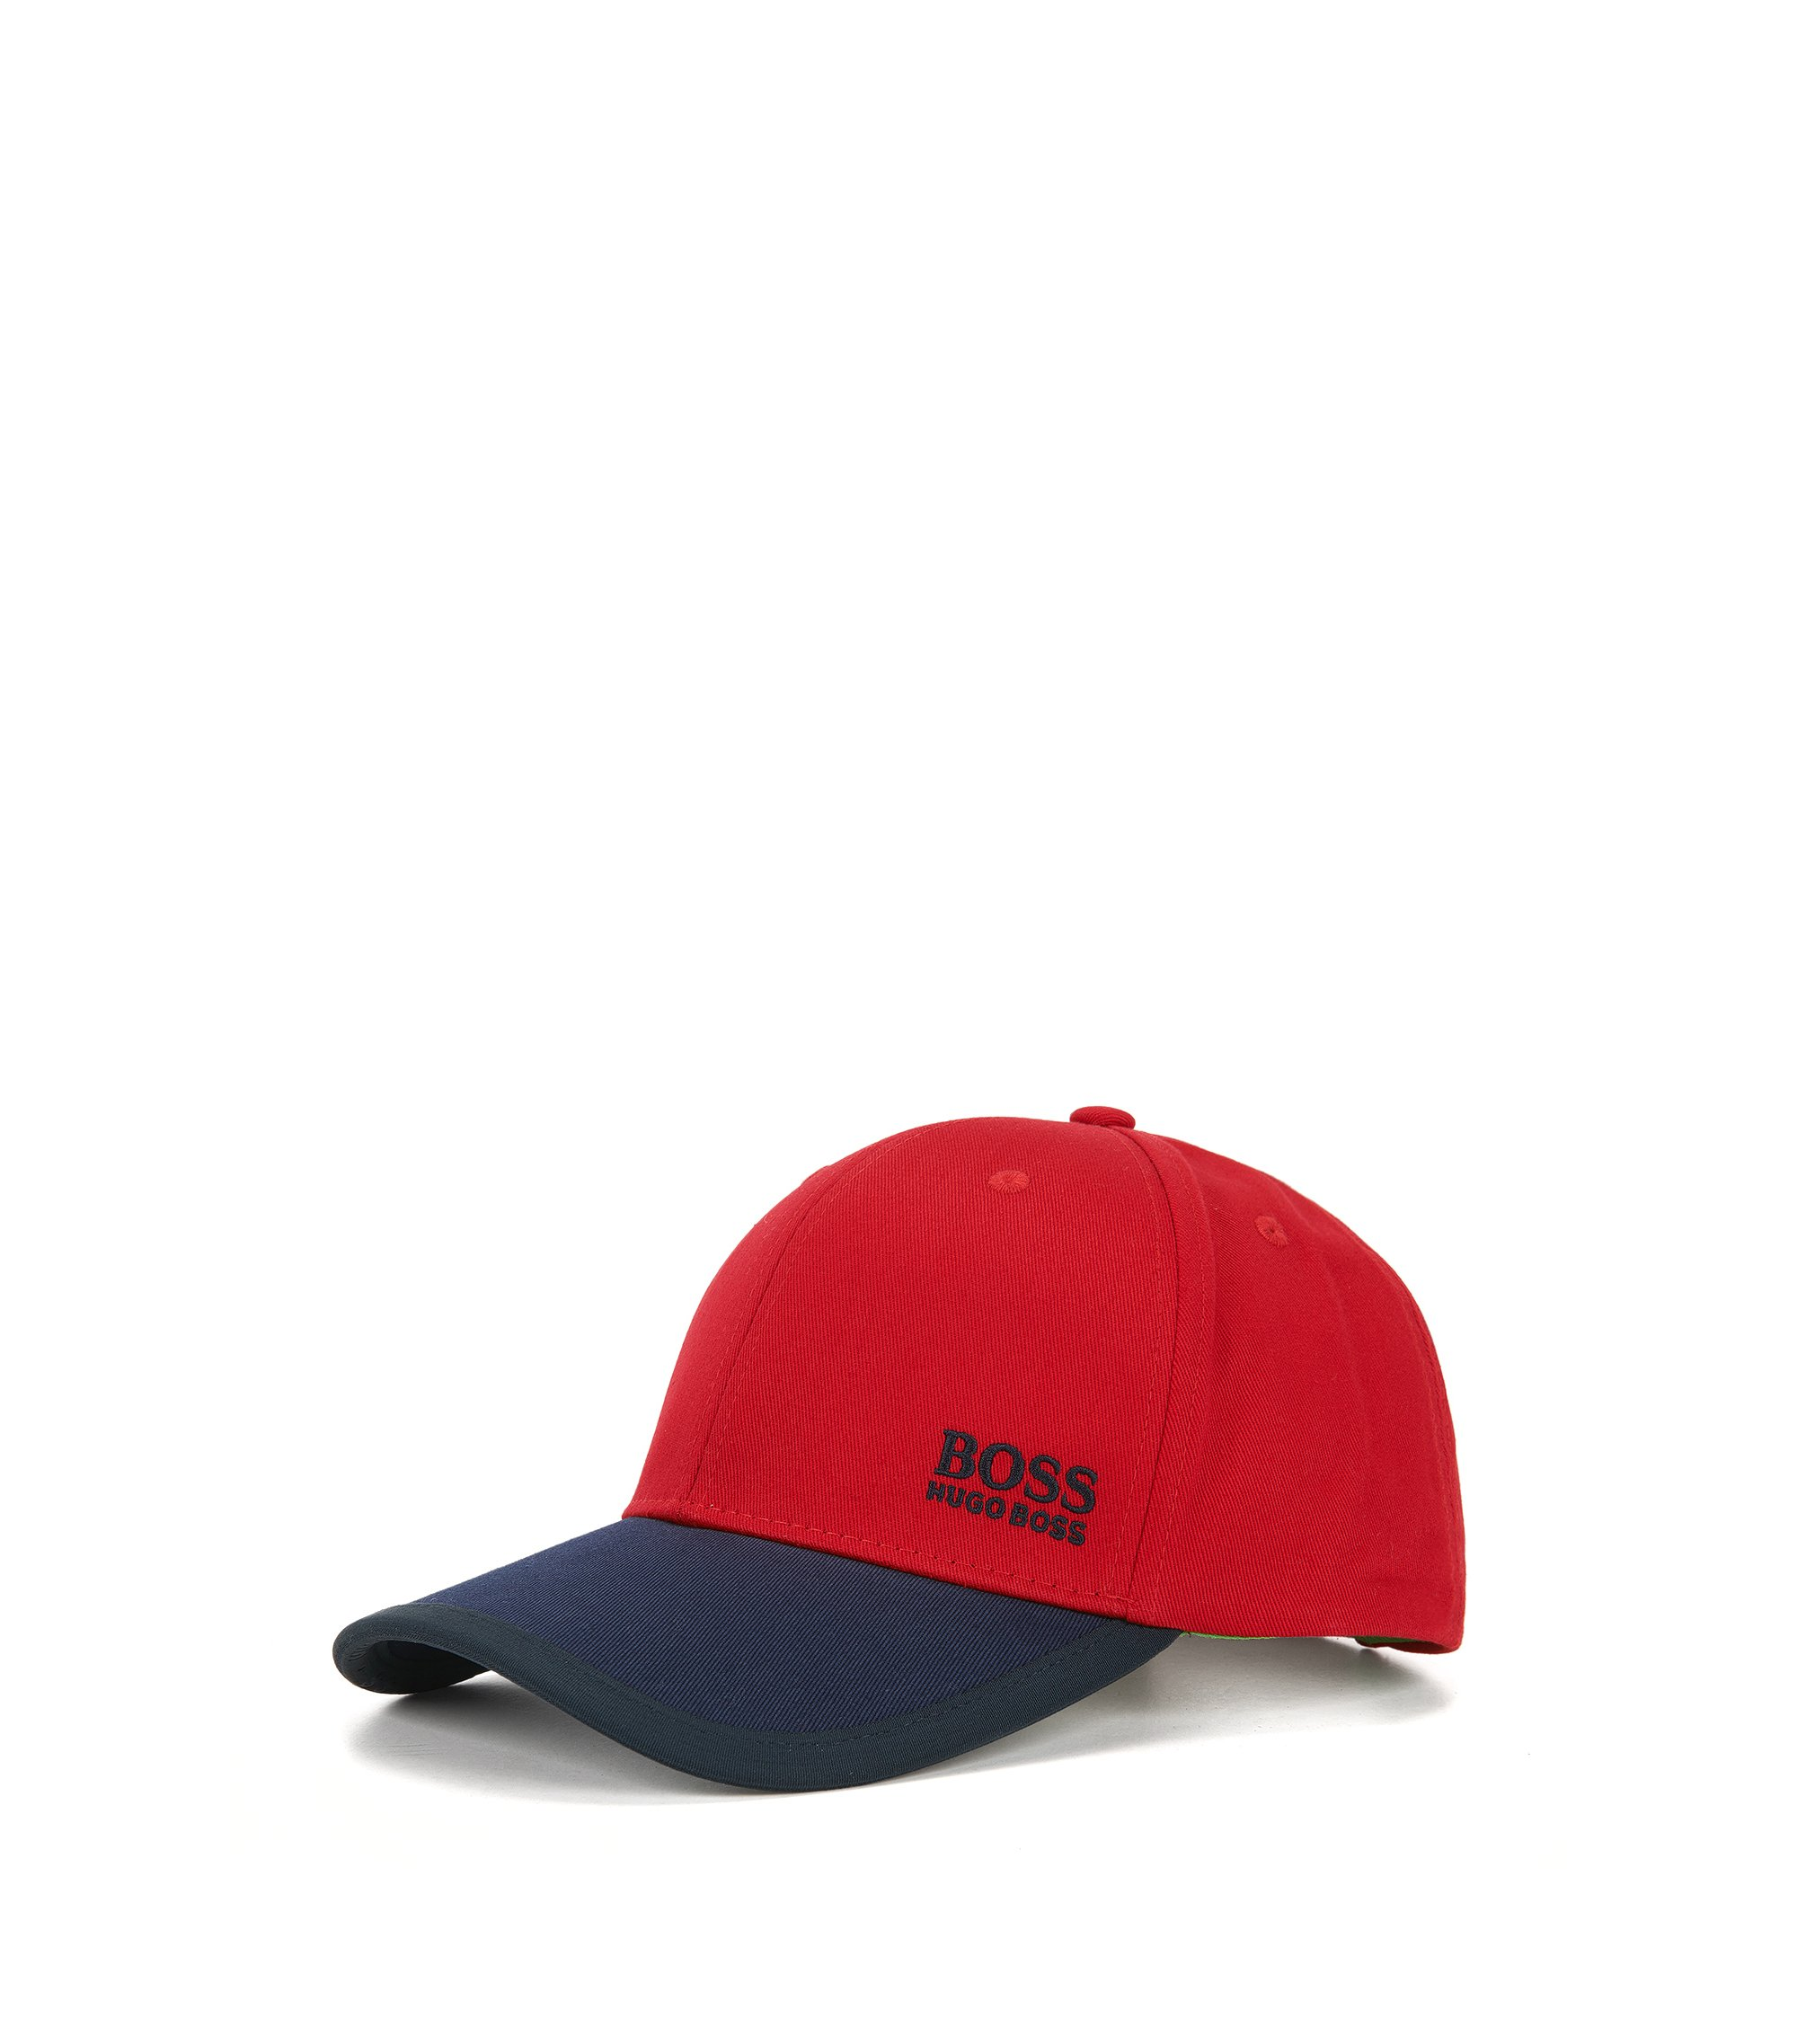 Baseball Cap aus Baumwolle im Colour-Block-Design, Rot